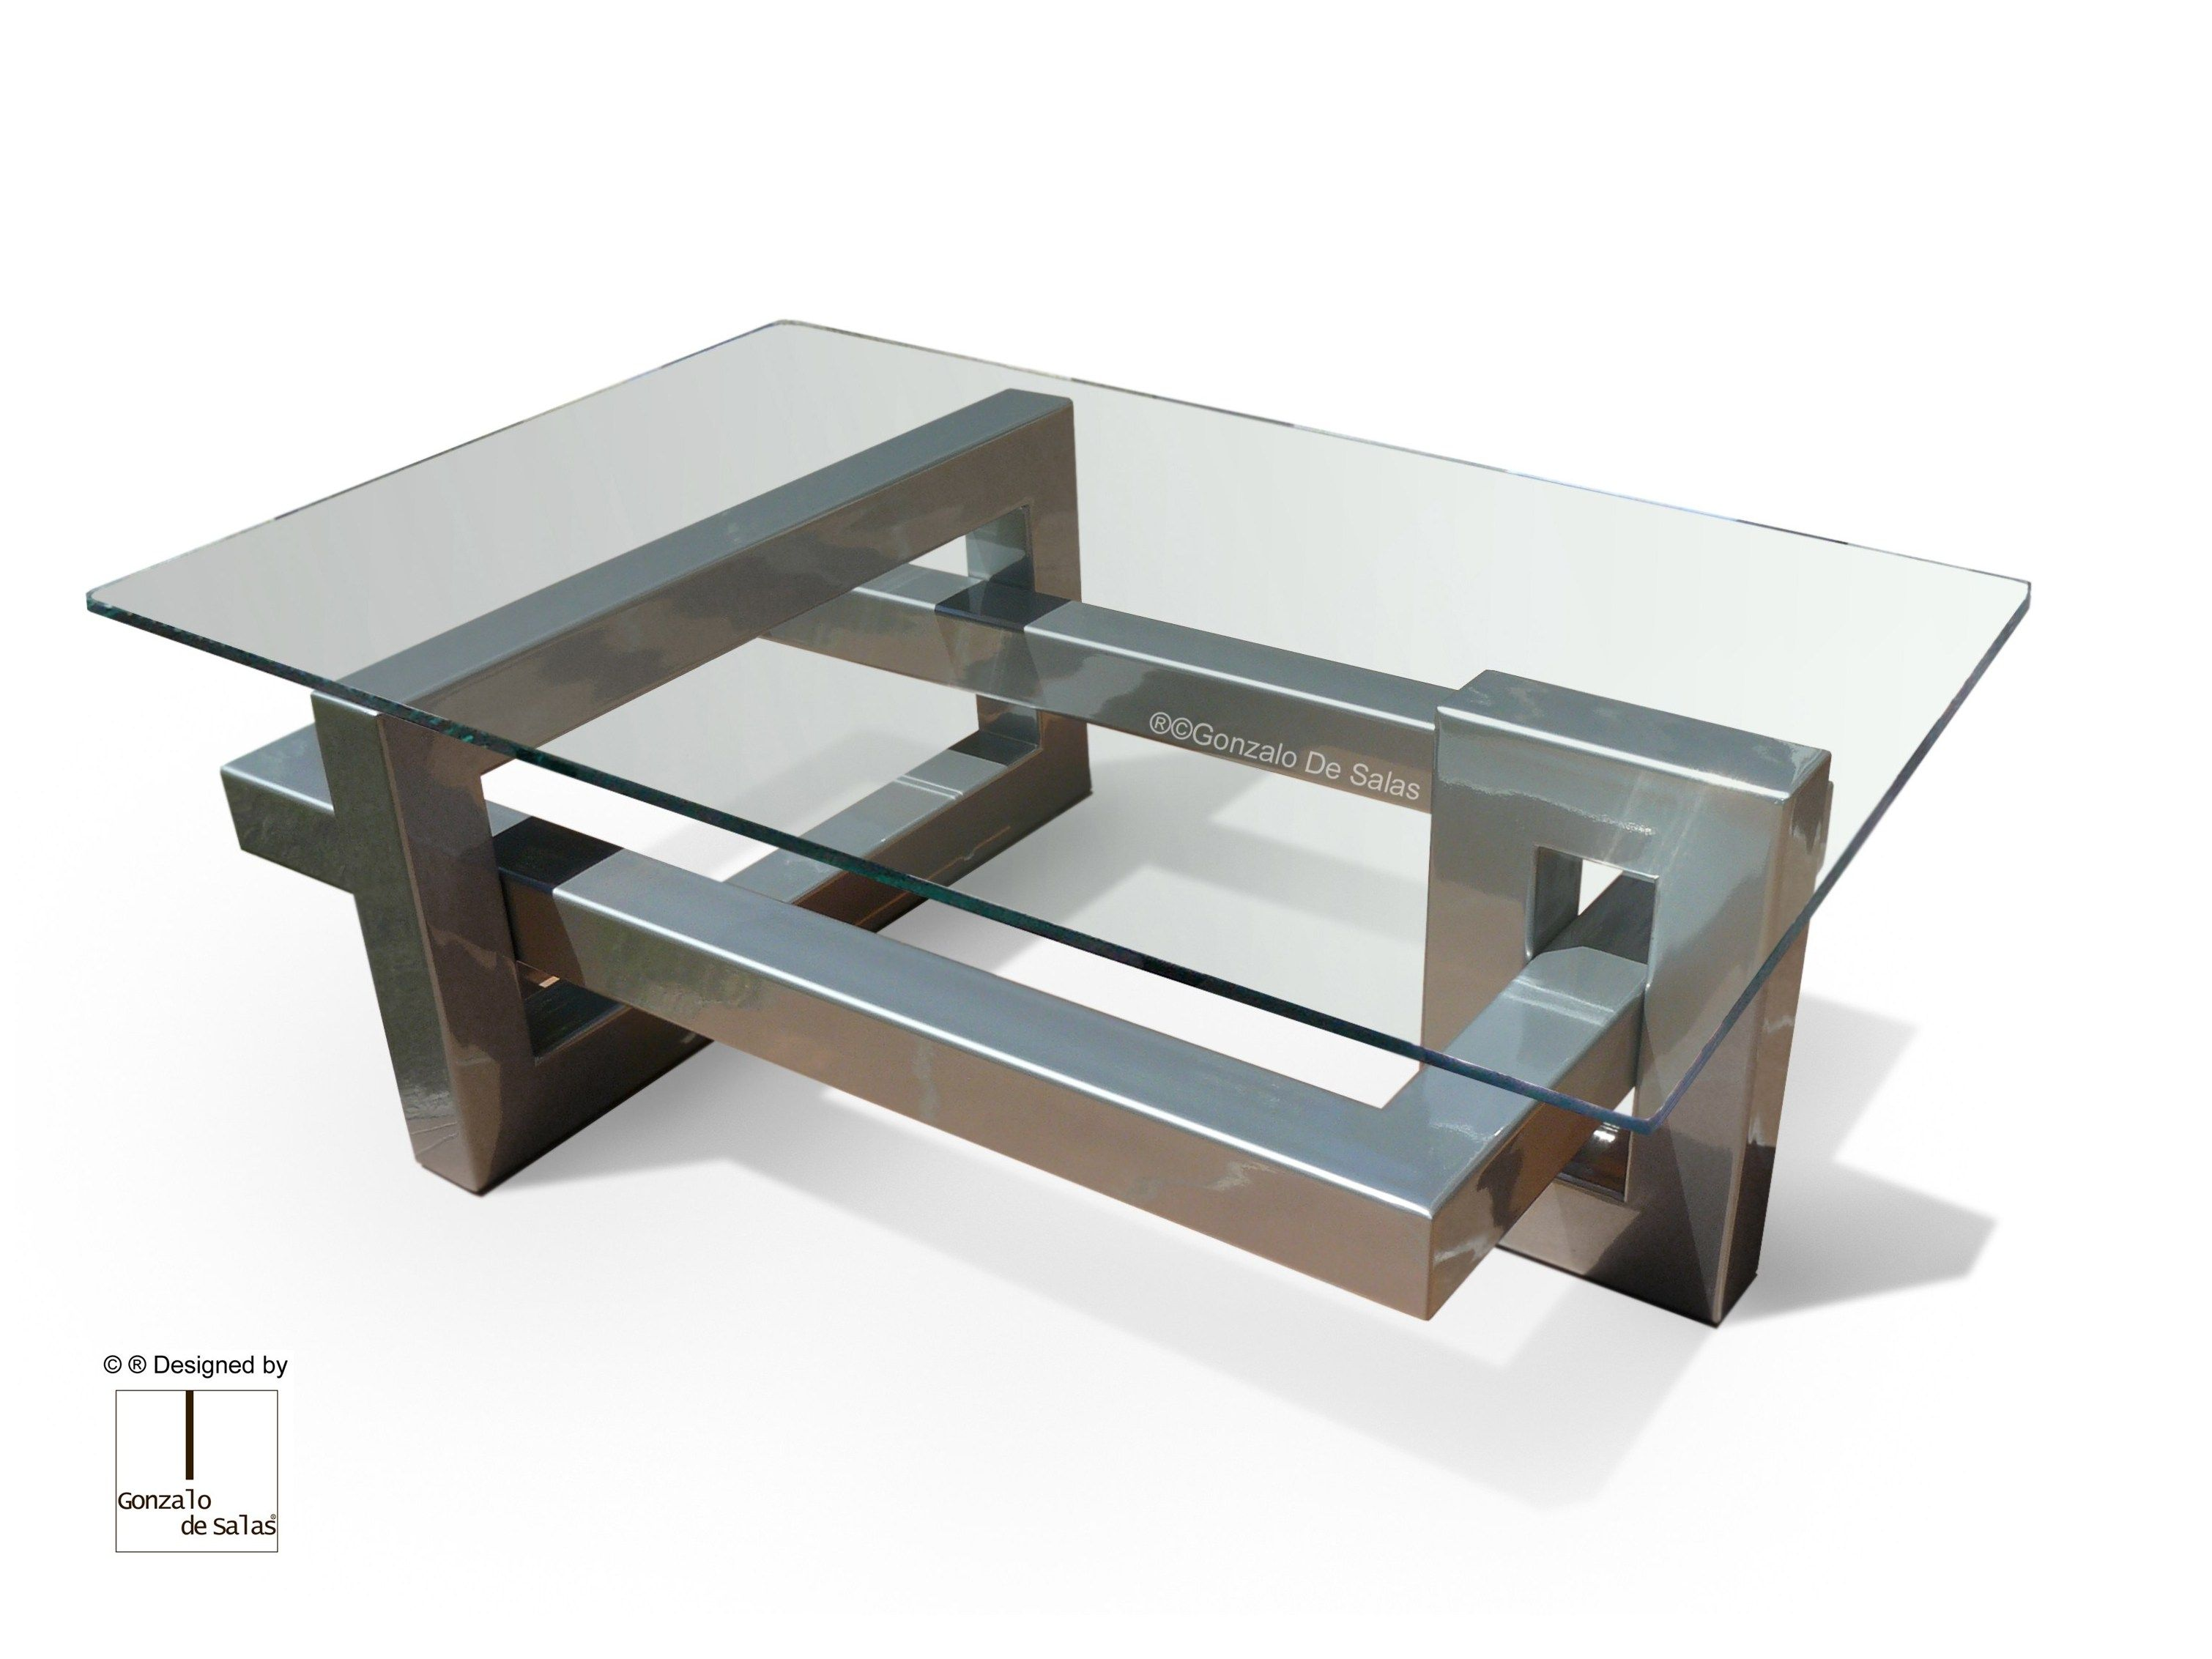 Download The Catalogue And Request Prices Of Ios Rectangular Coffee Table By Gonzalo De Salas Stainless Steel Coffee Table Metal Furniture Steel Coffee Table [ 2265 x 3020 Pixel ]